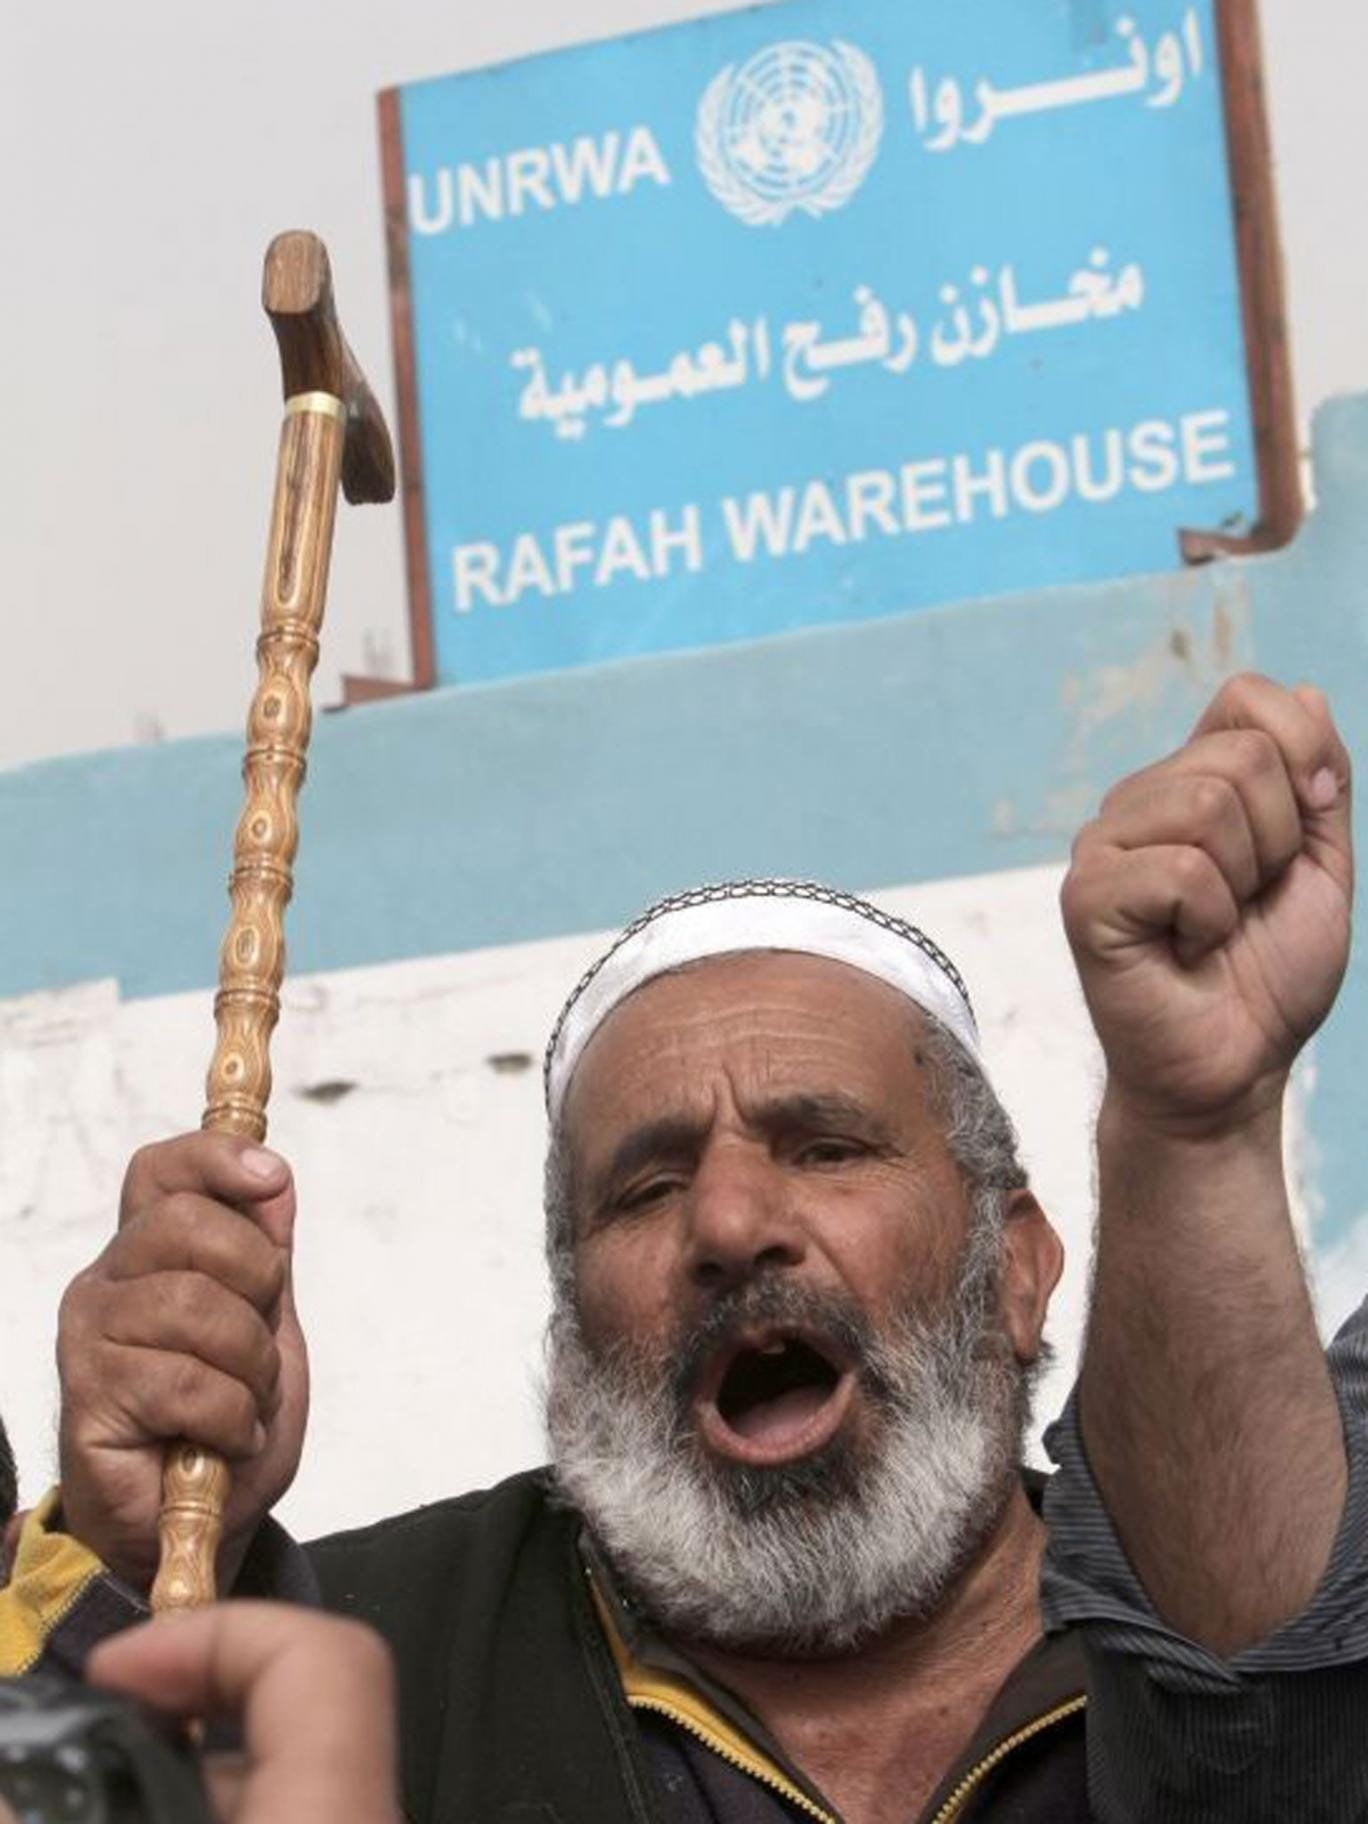 A Palestinian man protests against the reduction of some of the financial and food aid services given by the United Nations Relief and Works Agency